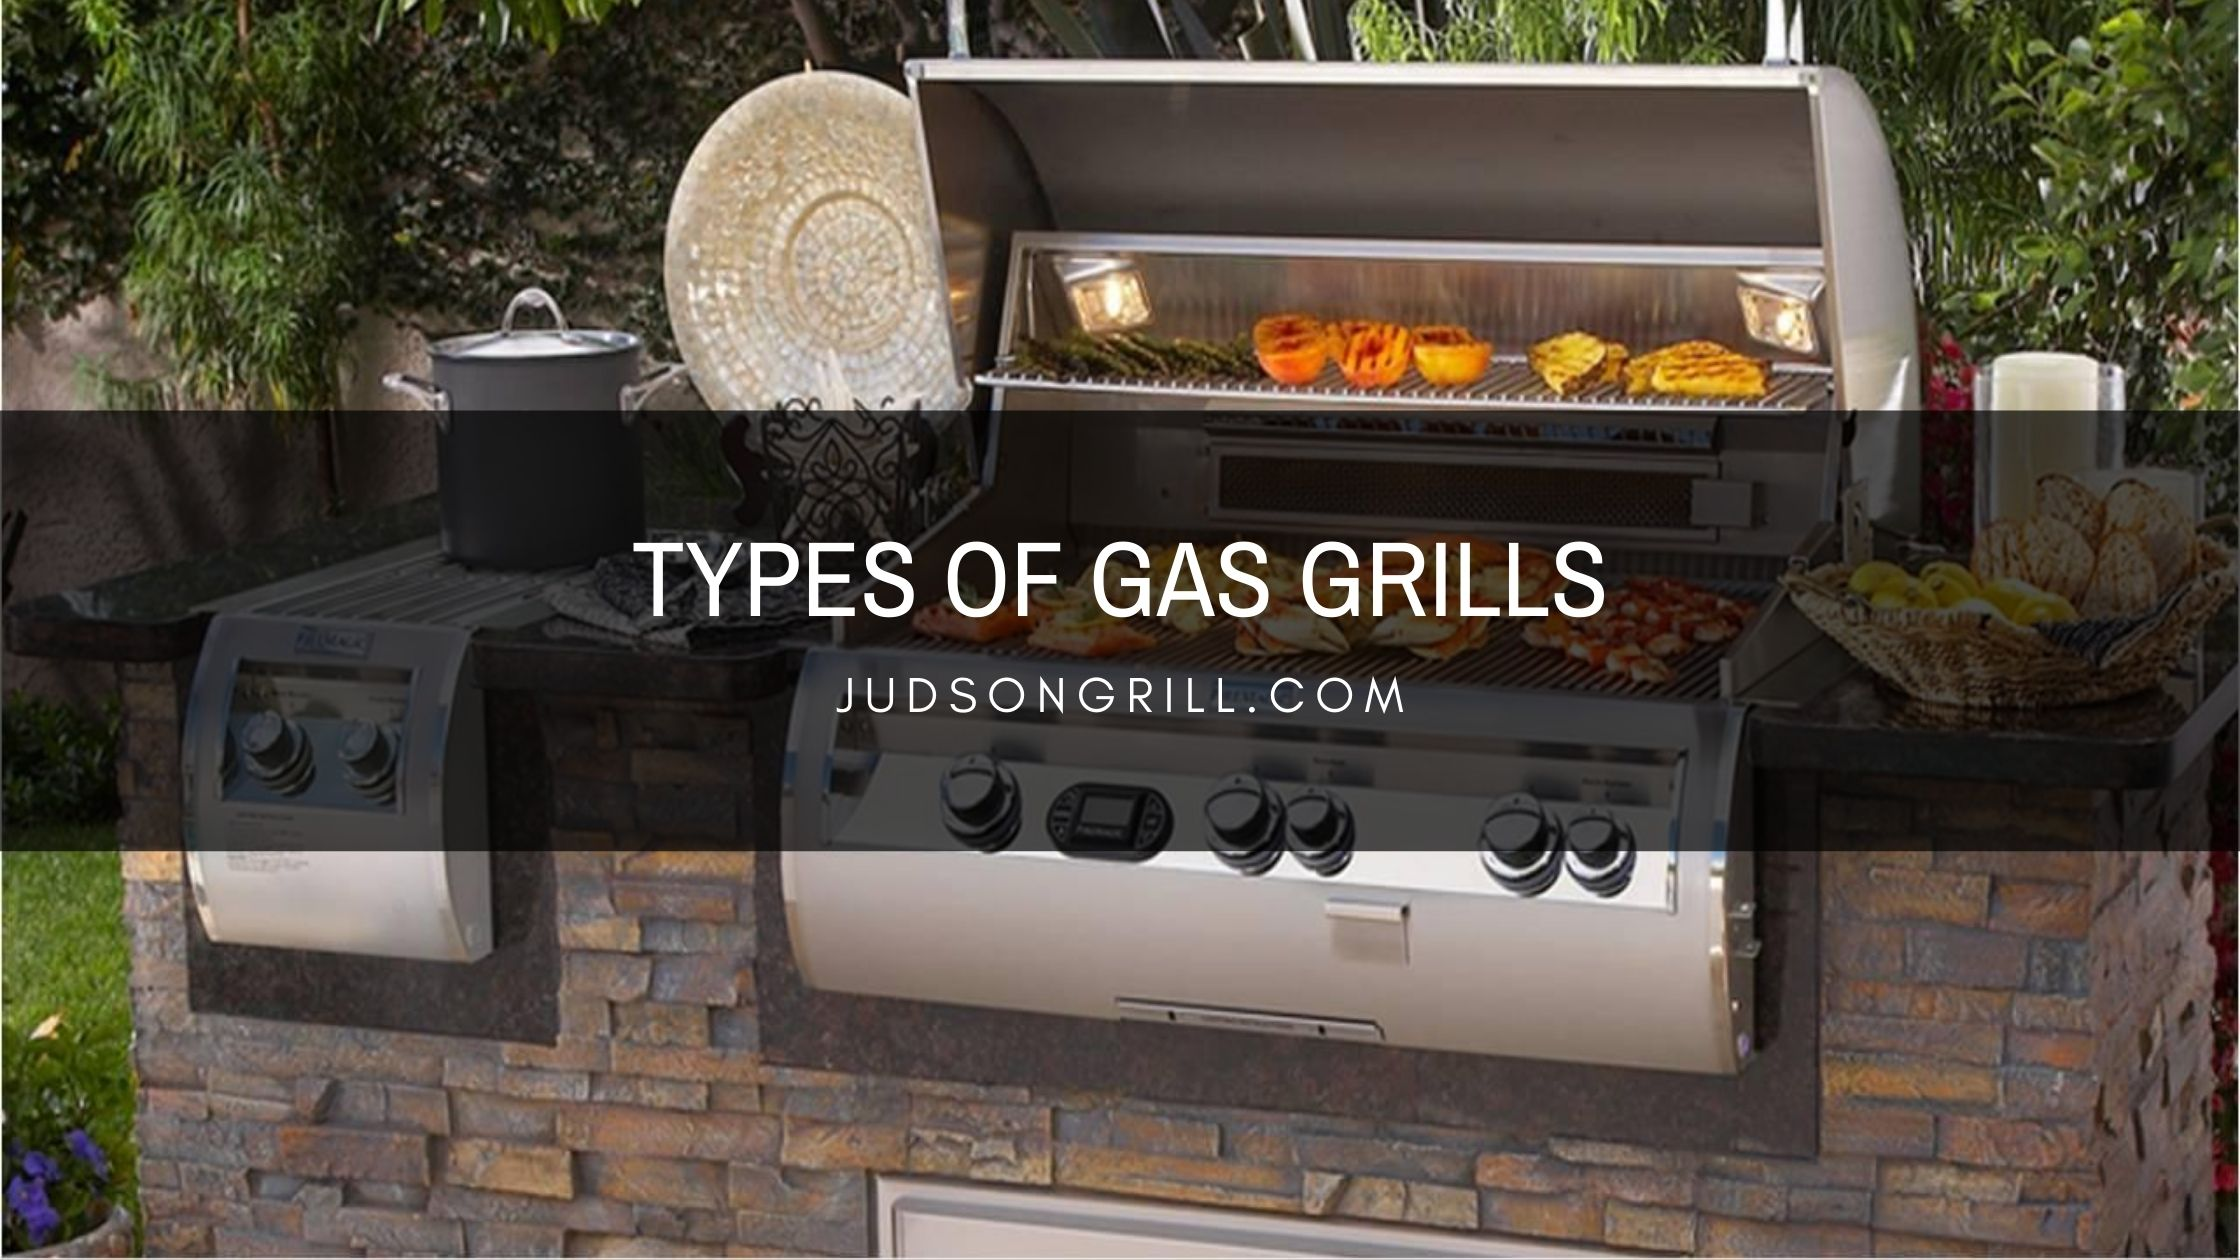 Types of Gas Grills